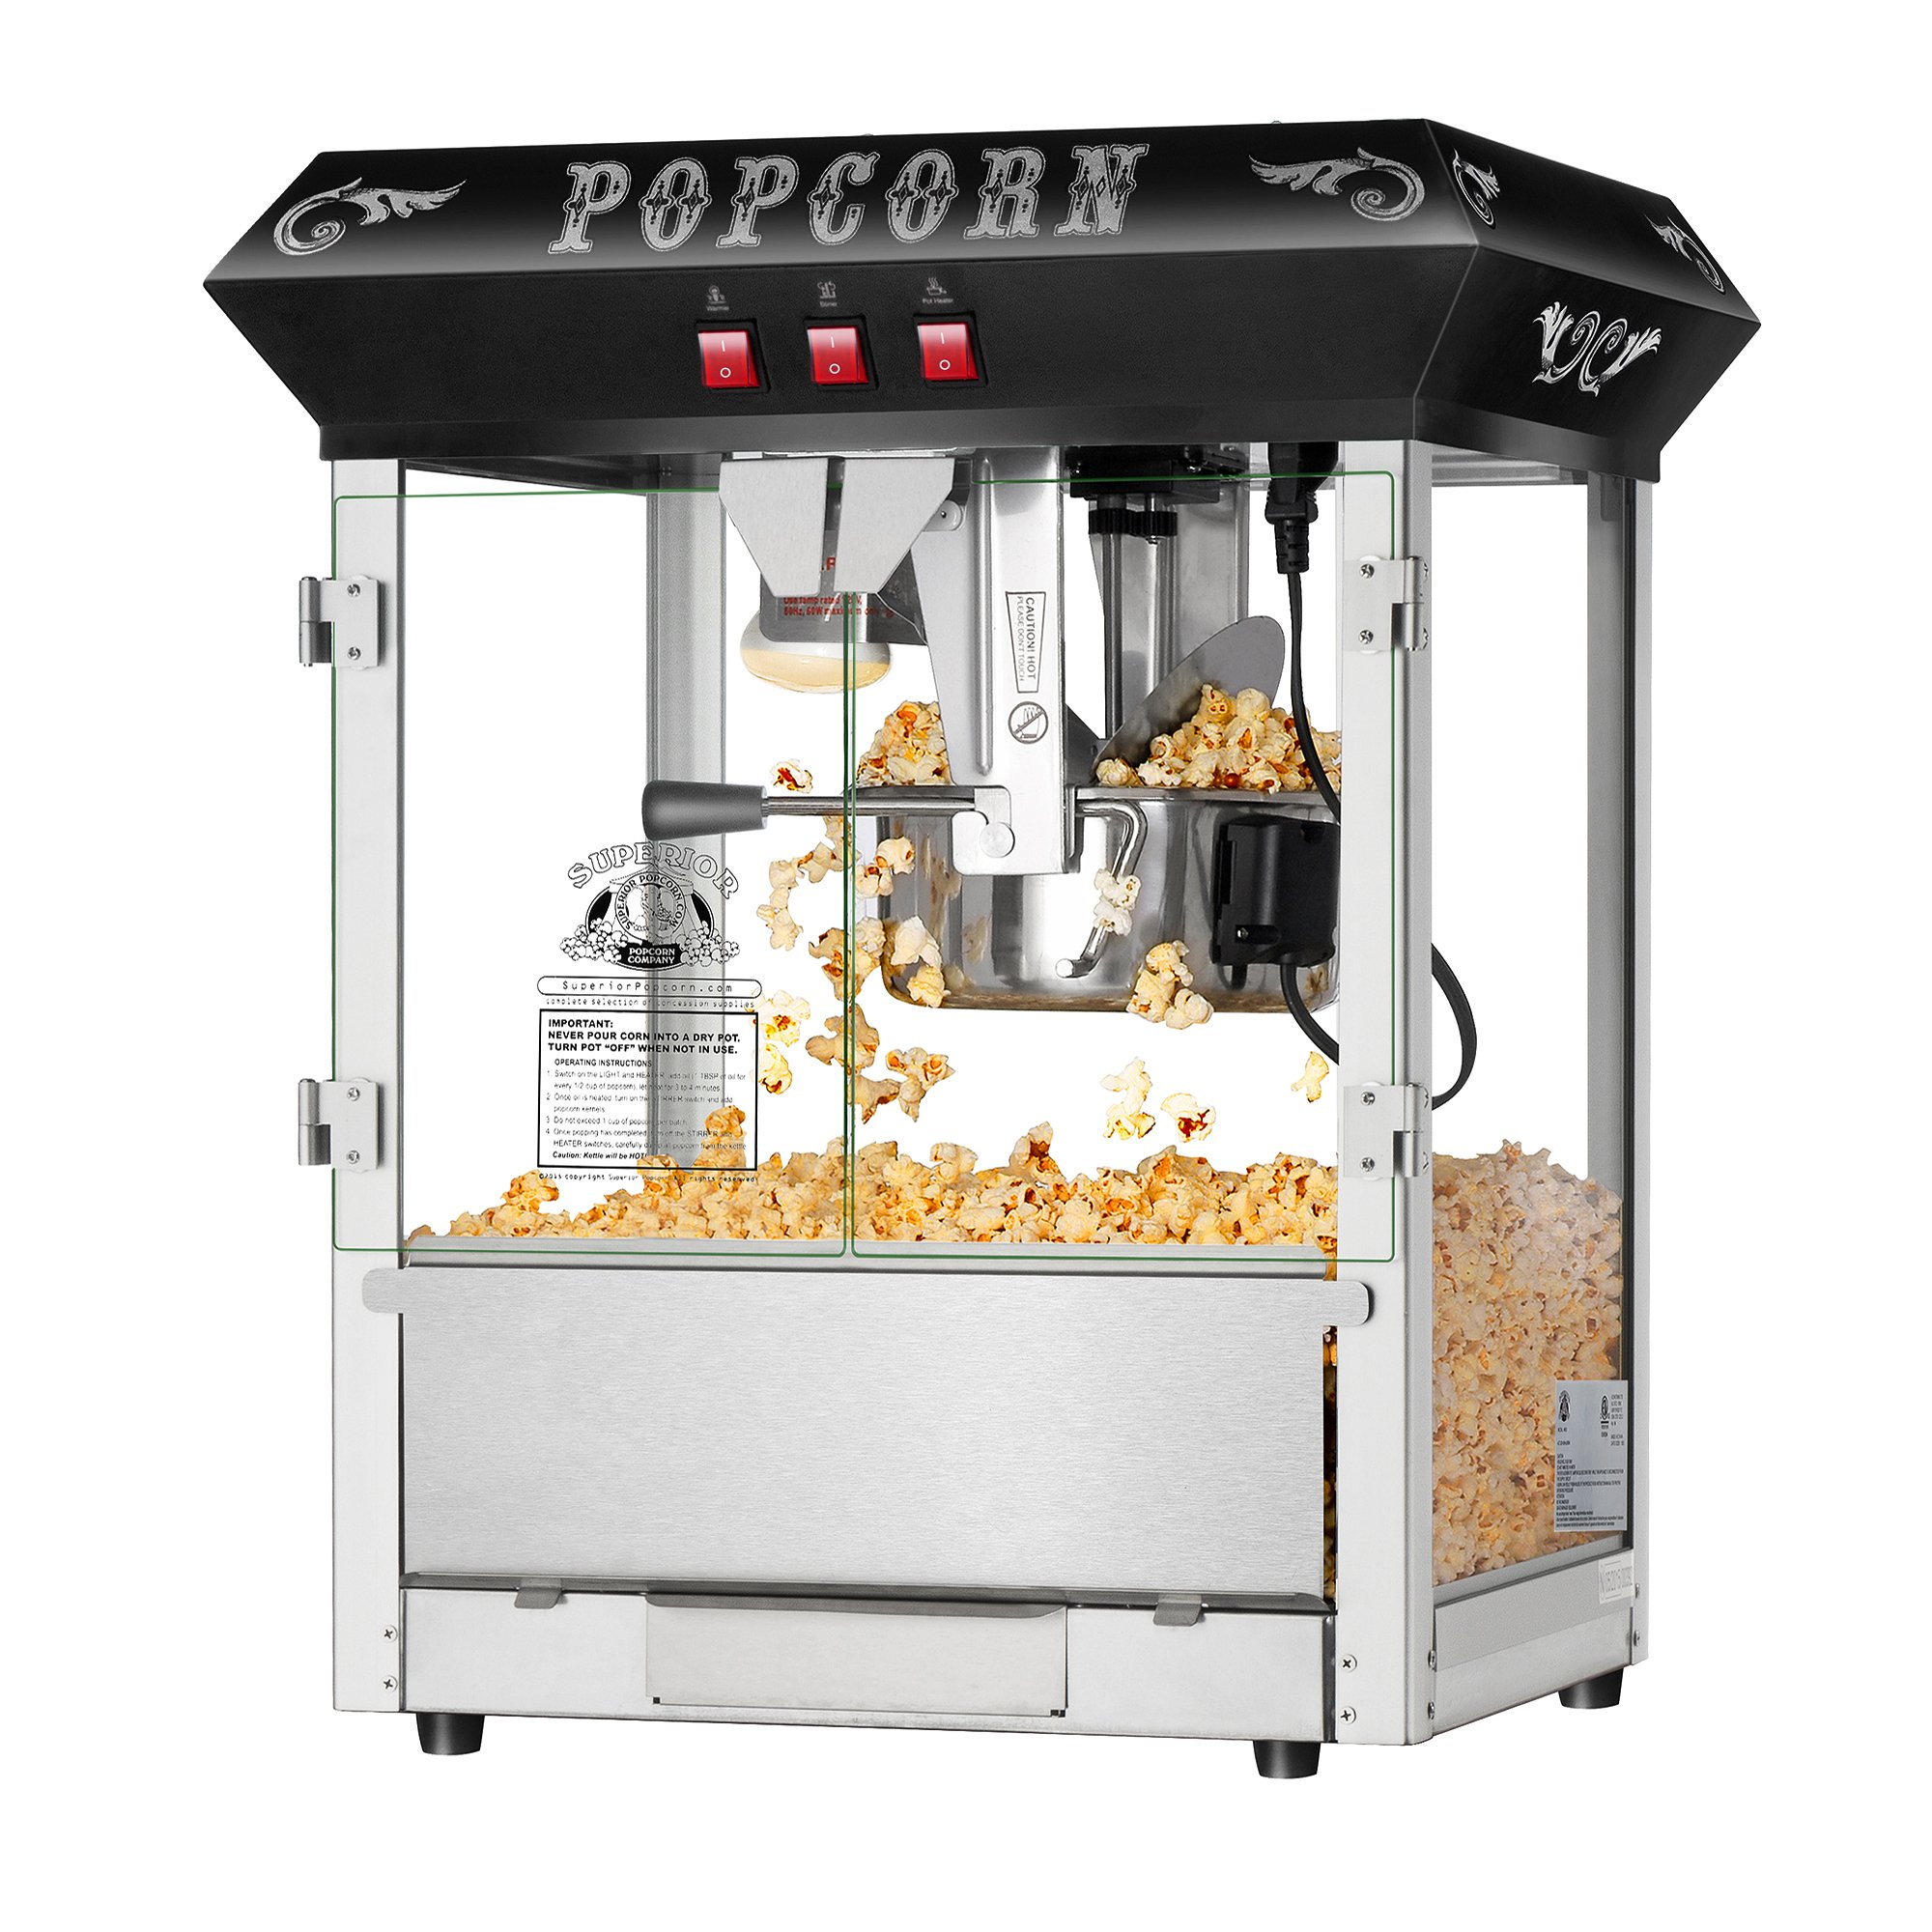 Hot and Fresh Countertop Style Popcorn Popper Machine-Makes Approx. 3 Gallons Per Batch- by Superior Popcorn Company- (8 oz., Black) by Superior Popcorn Company